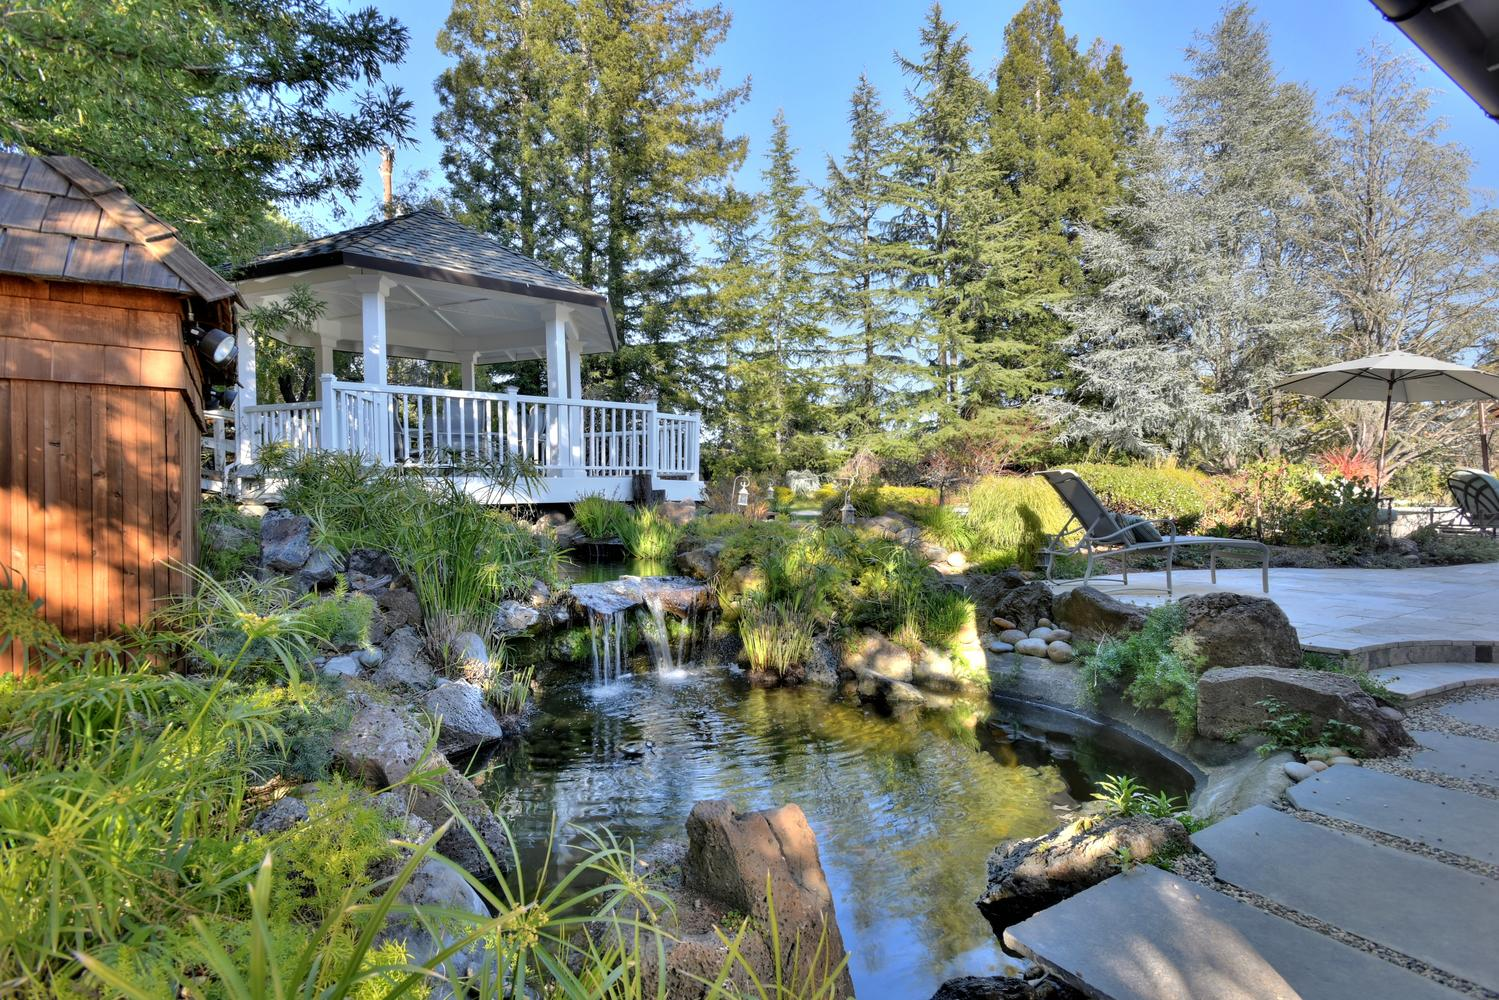 15977 Grandview Dr Monte-large-046-50-Pond and Gazebo-1500x1000-72dpi.jpg